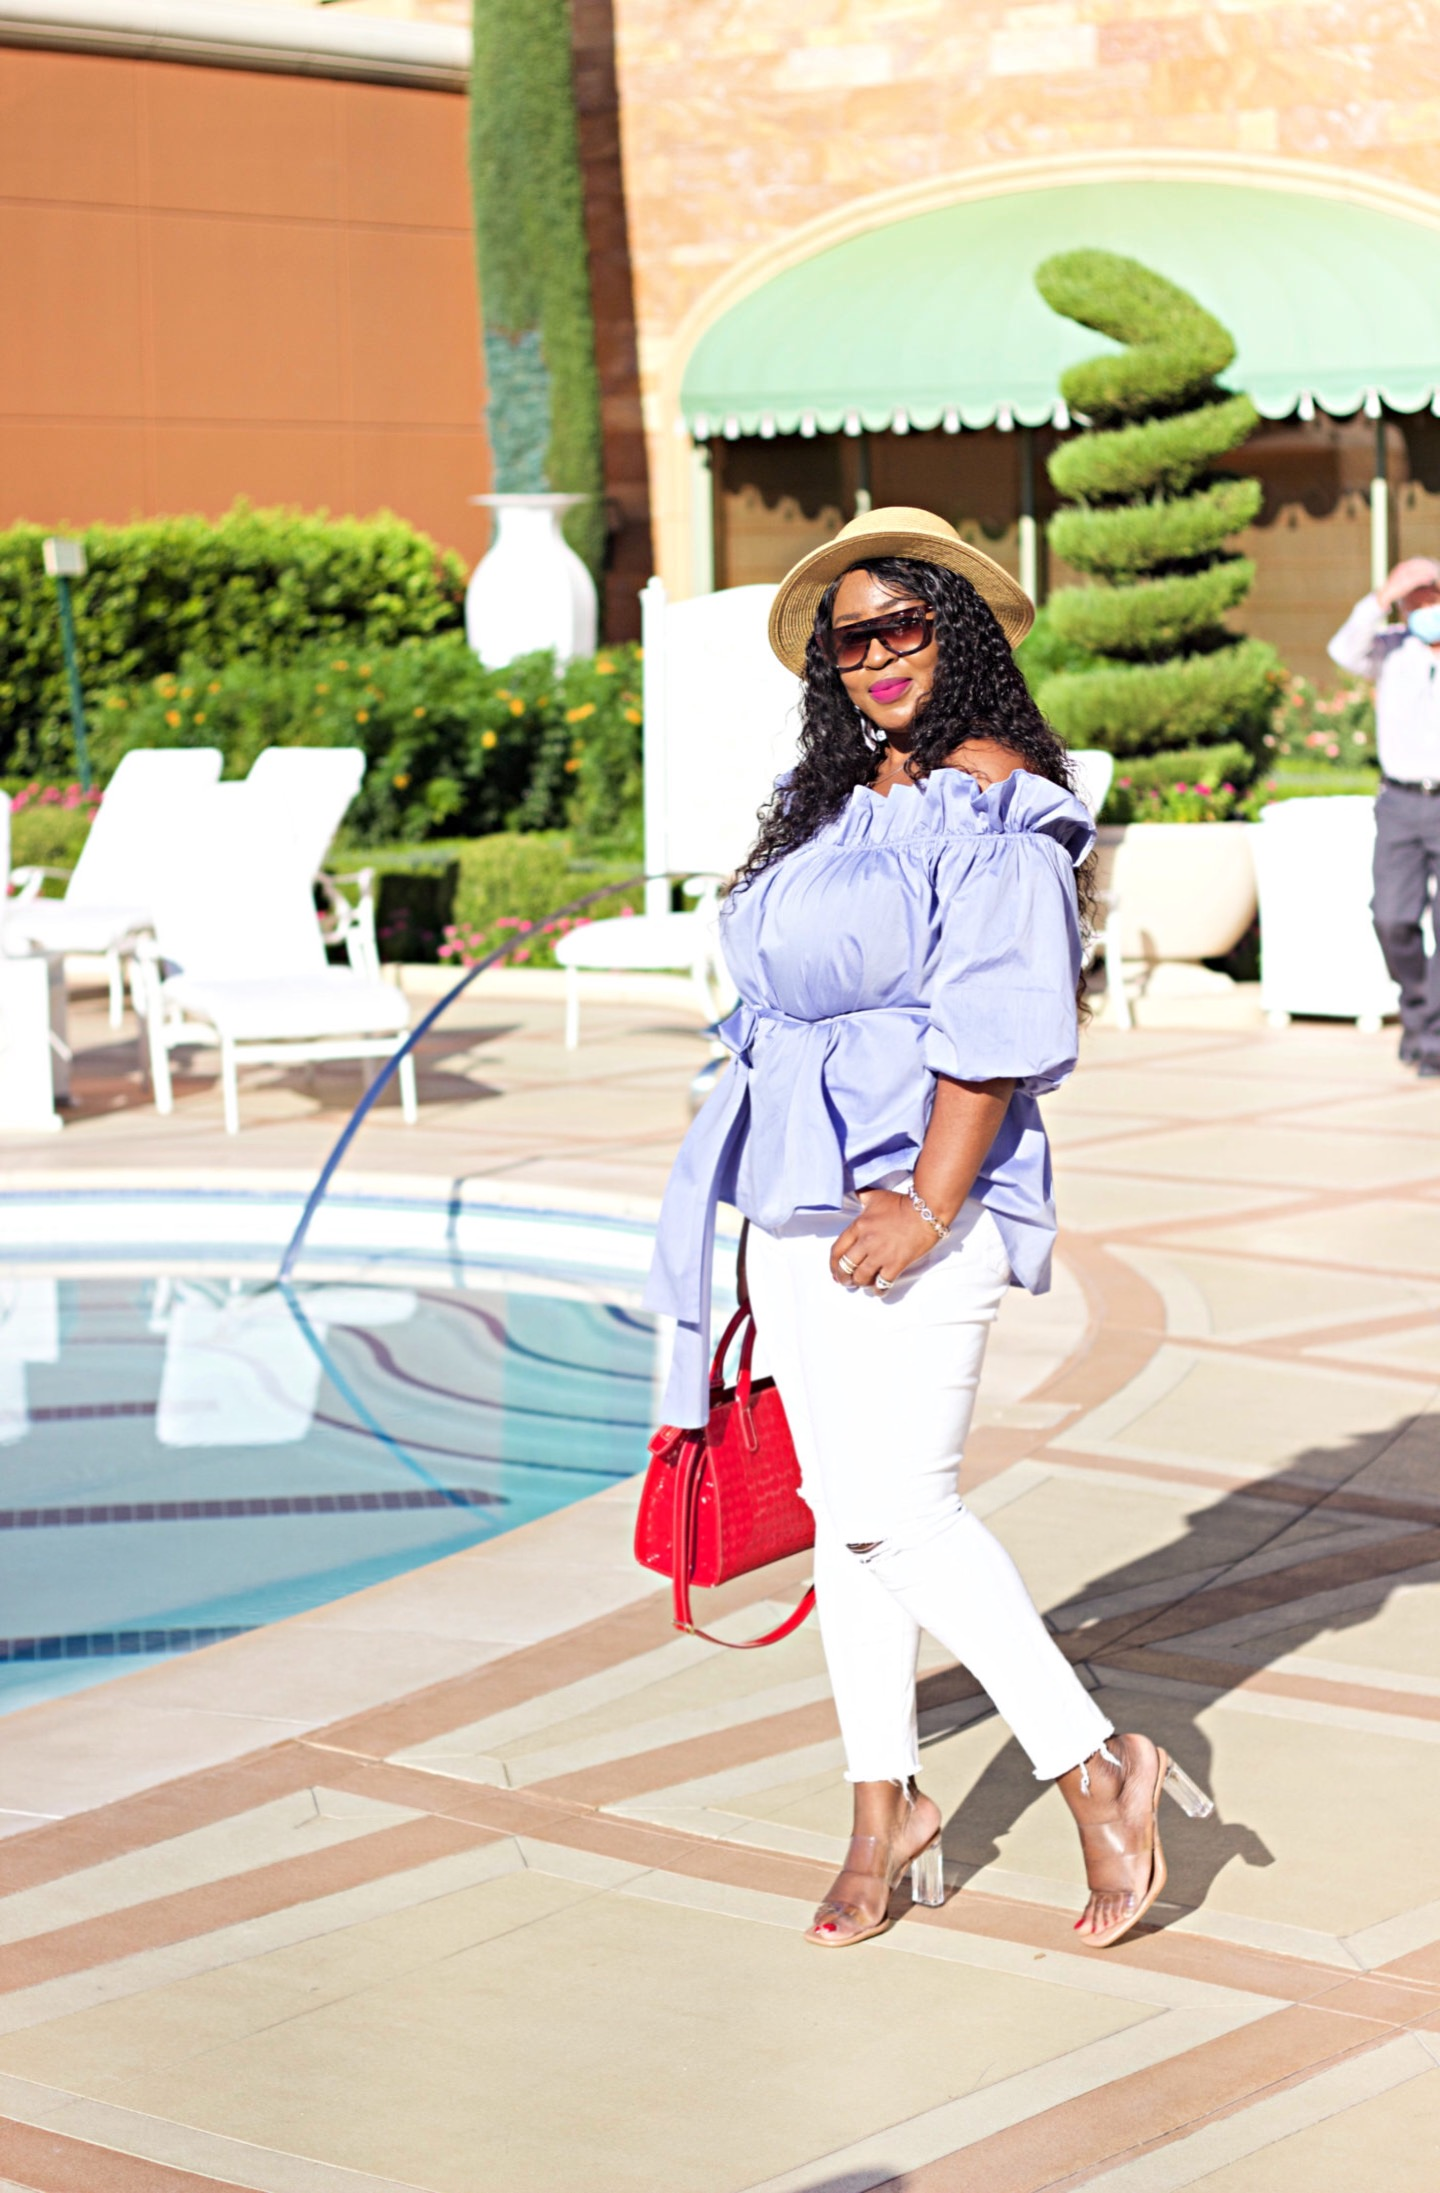 How to wear a cute off-shoulder blouse in Summer and still look classy